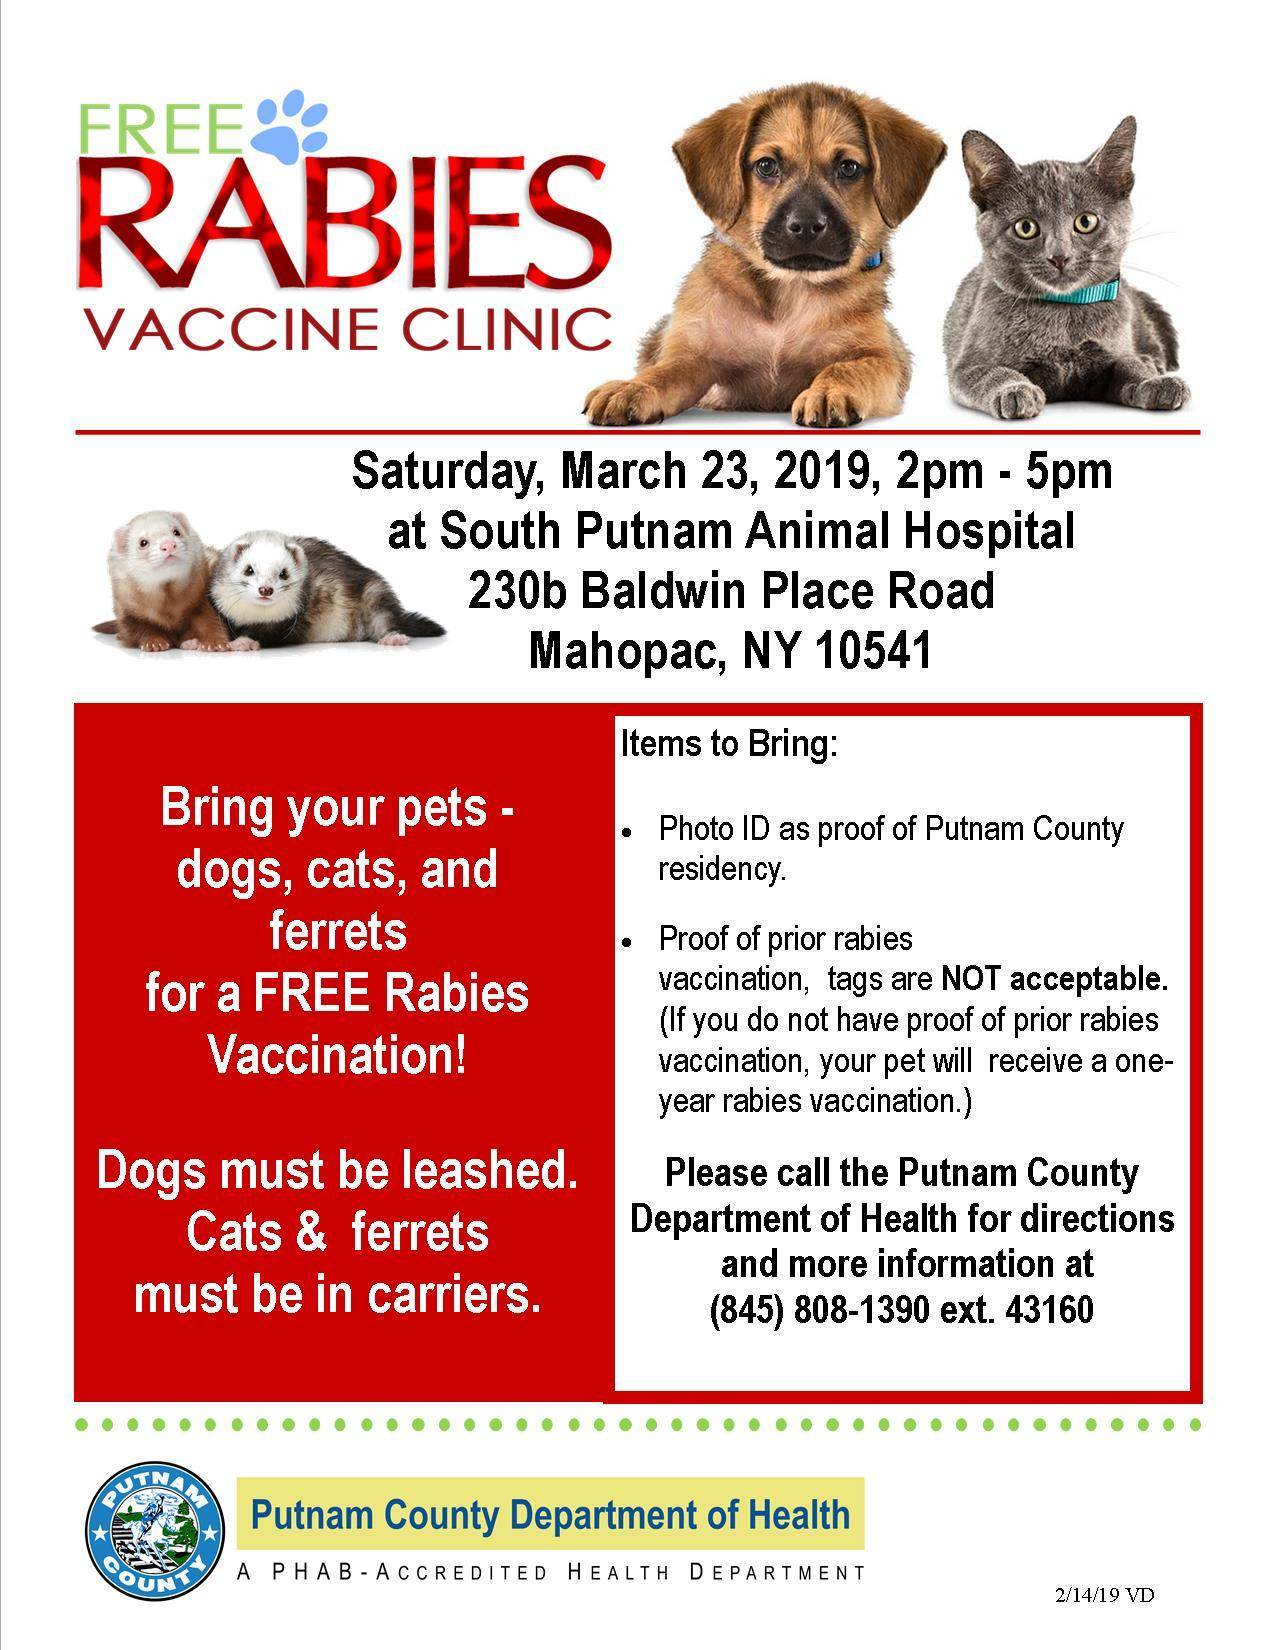 Pcdoh Free Rabies Vaccination Clinic Tapinto